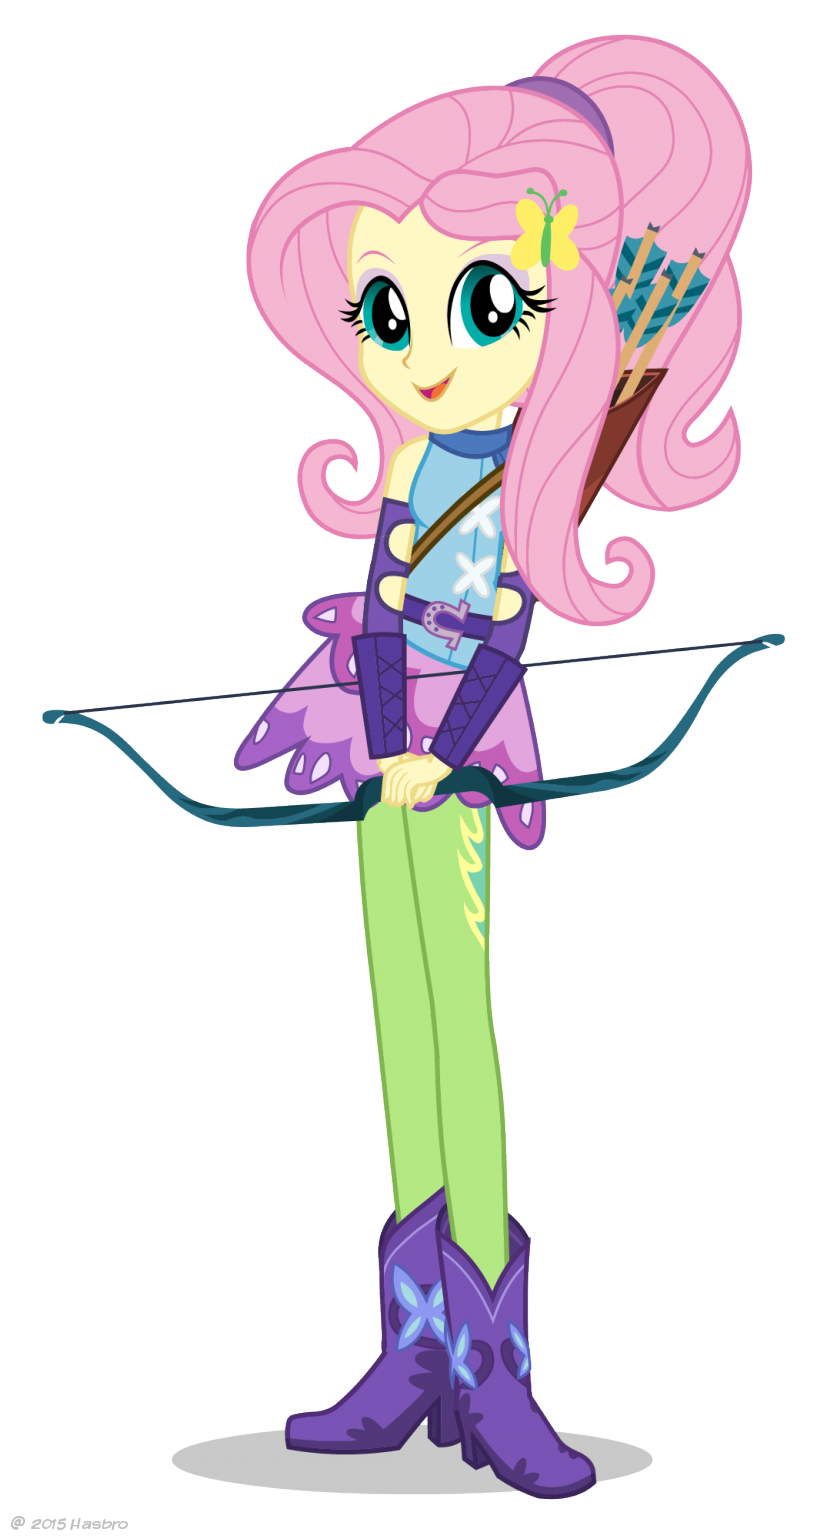 Magic clipart game. Image friendship games fluttershy